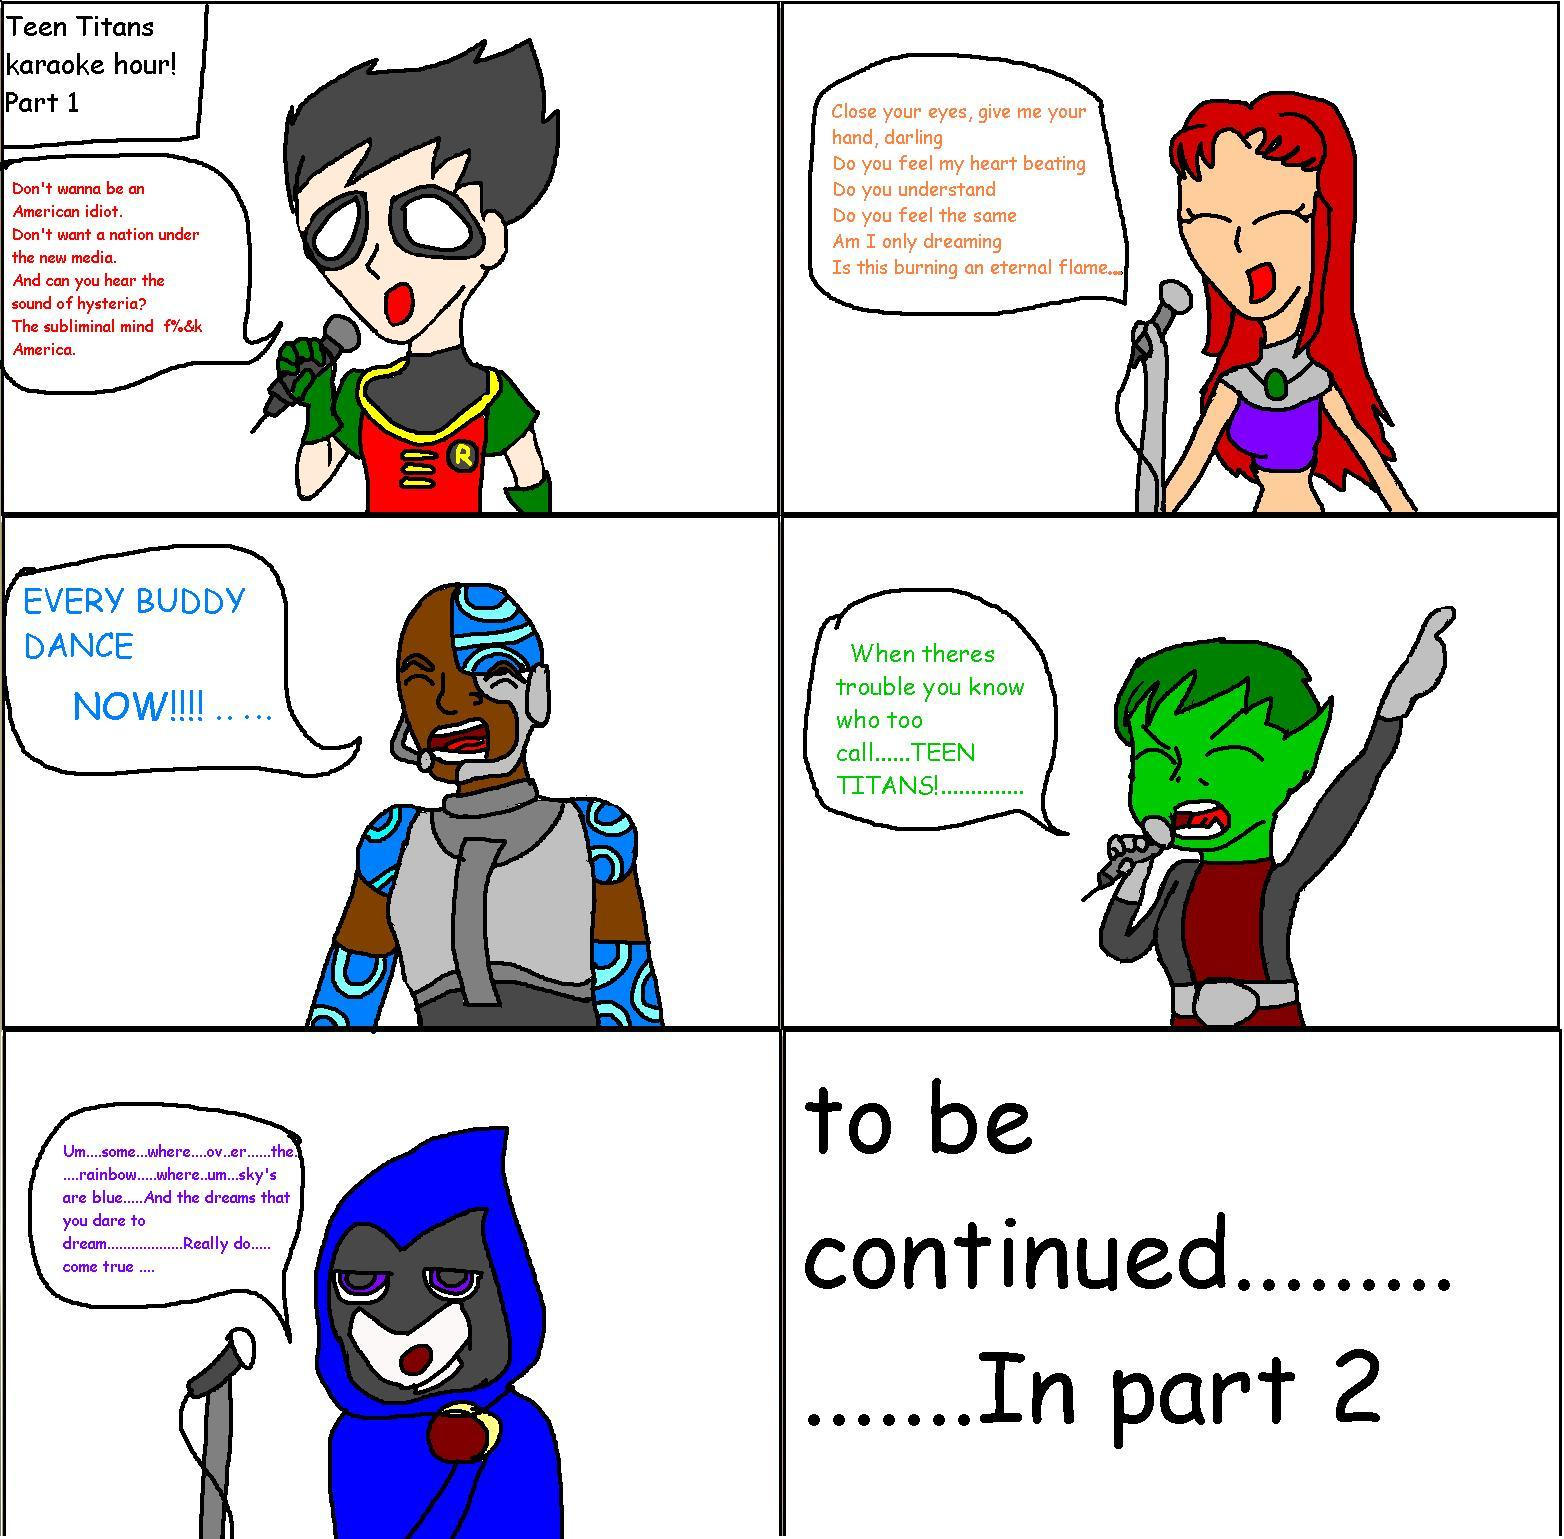 Teen Titans - More Songs, Less Music